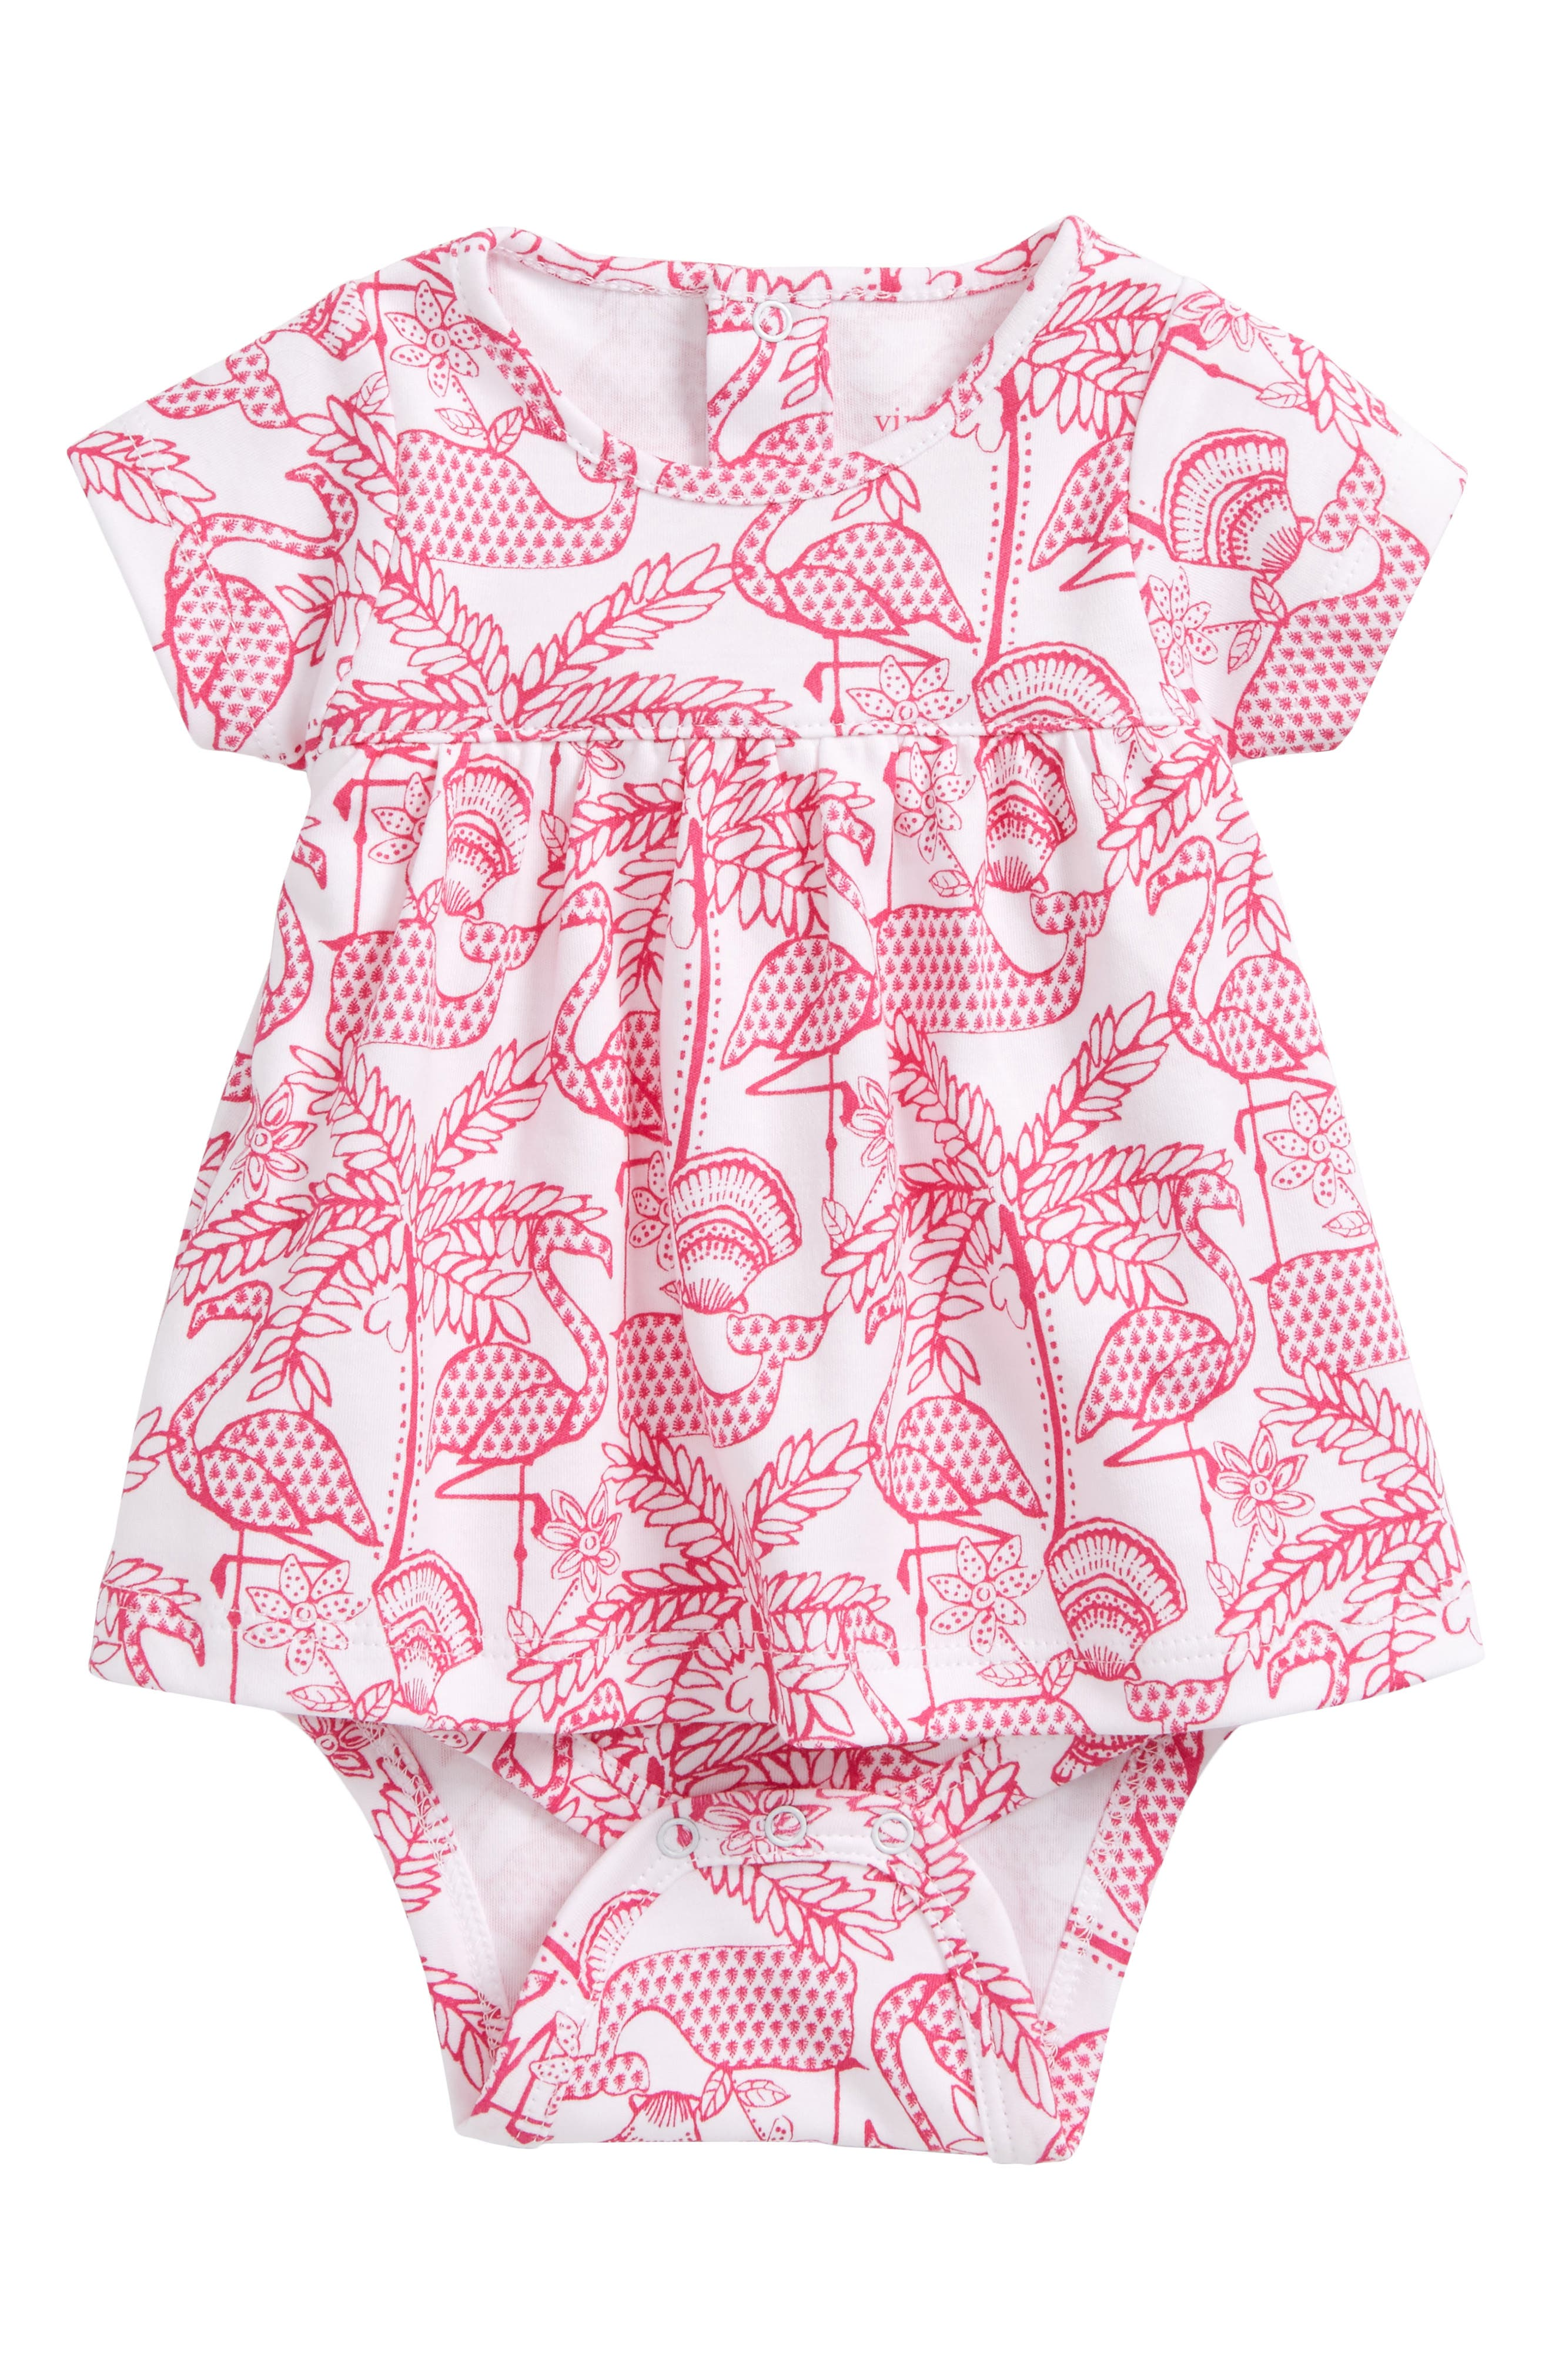 Main Image - vineyard vines Flamingo Pima Cotton Skirted Bodysuit (Baby Girls)